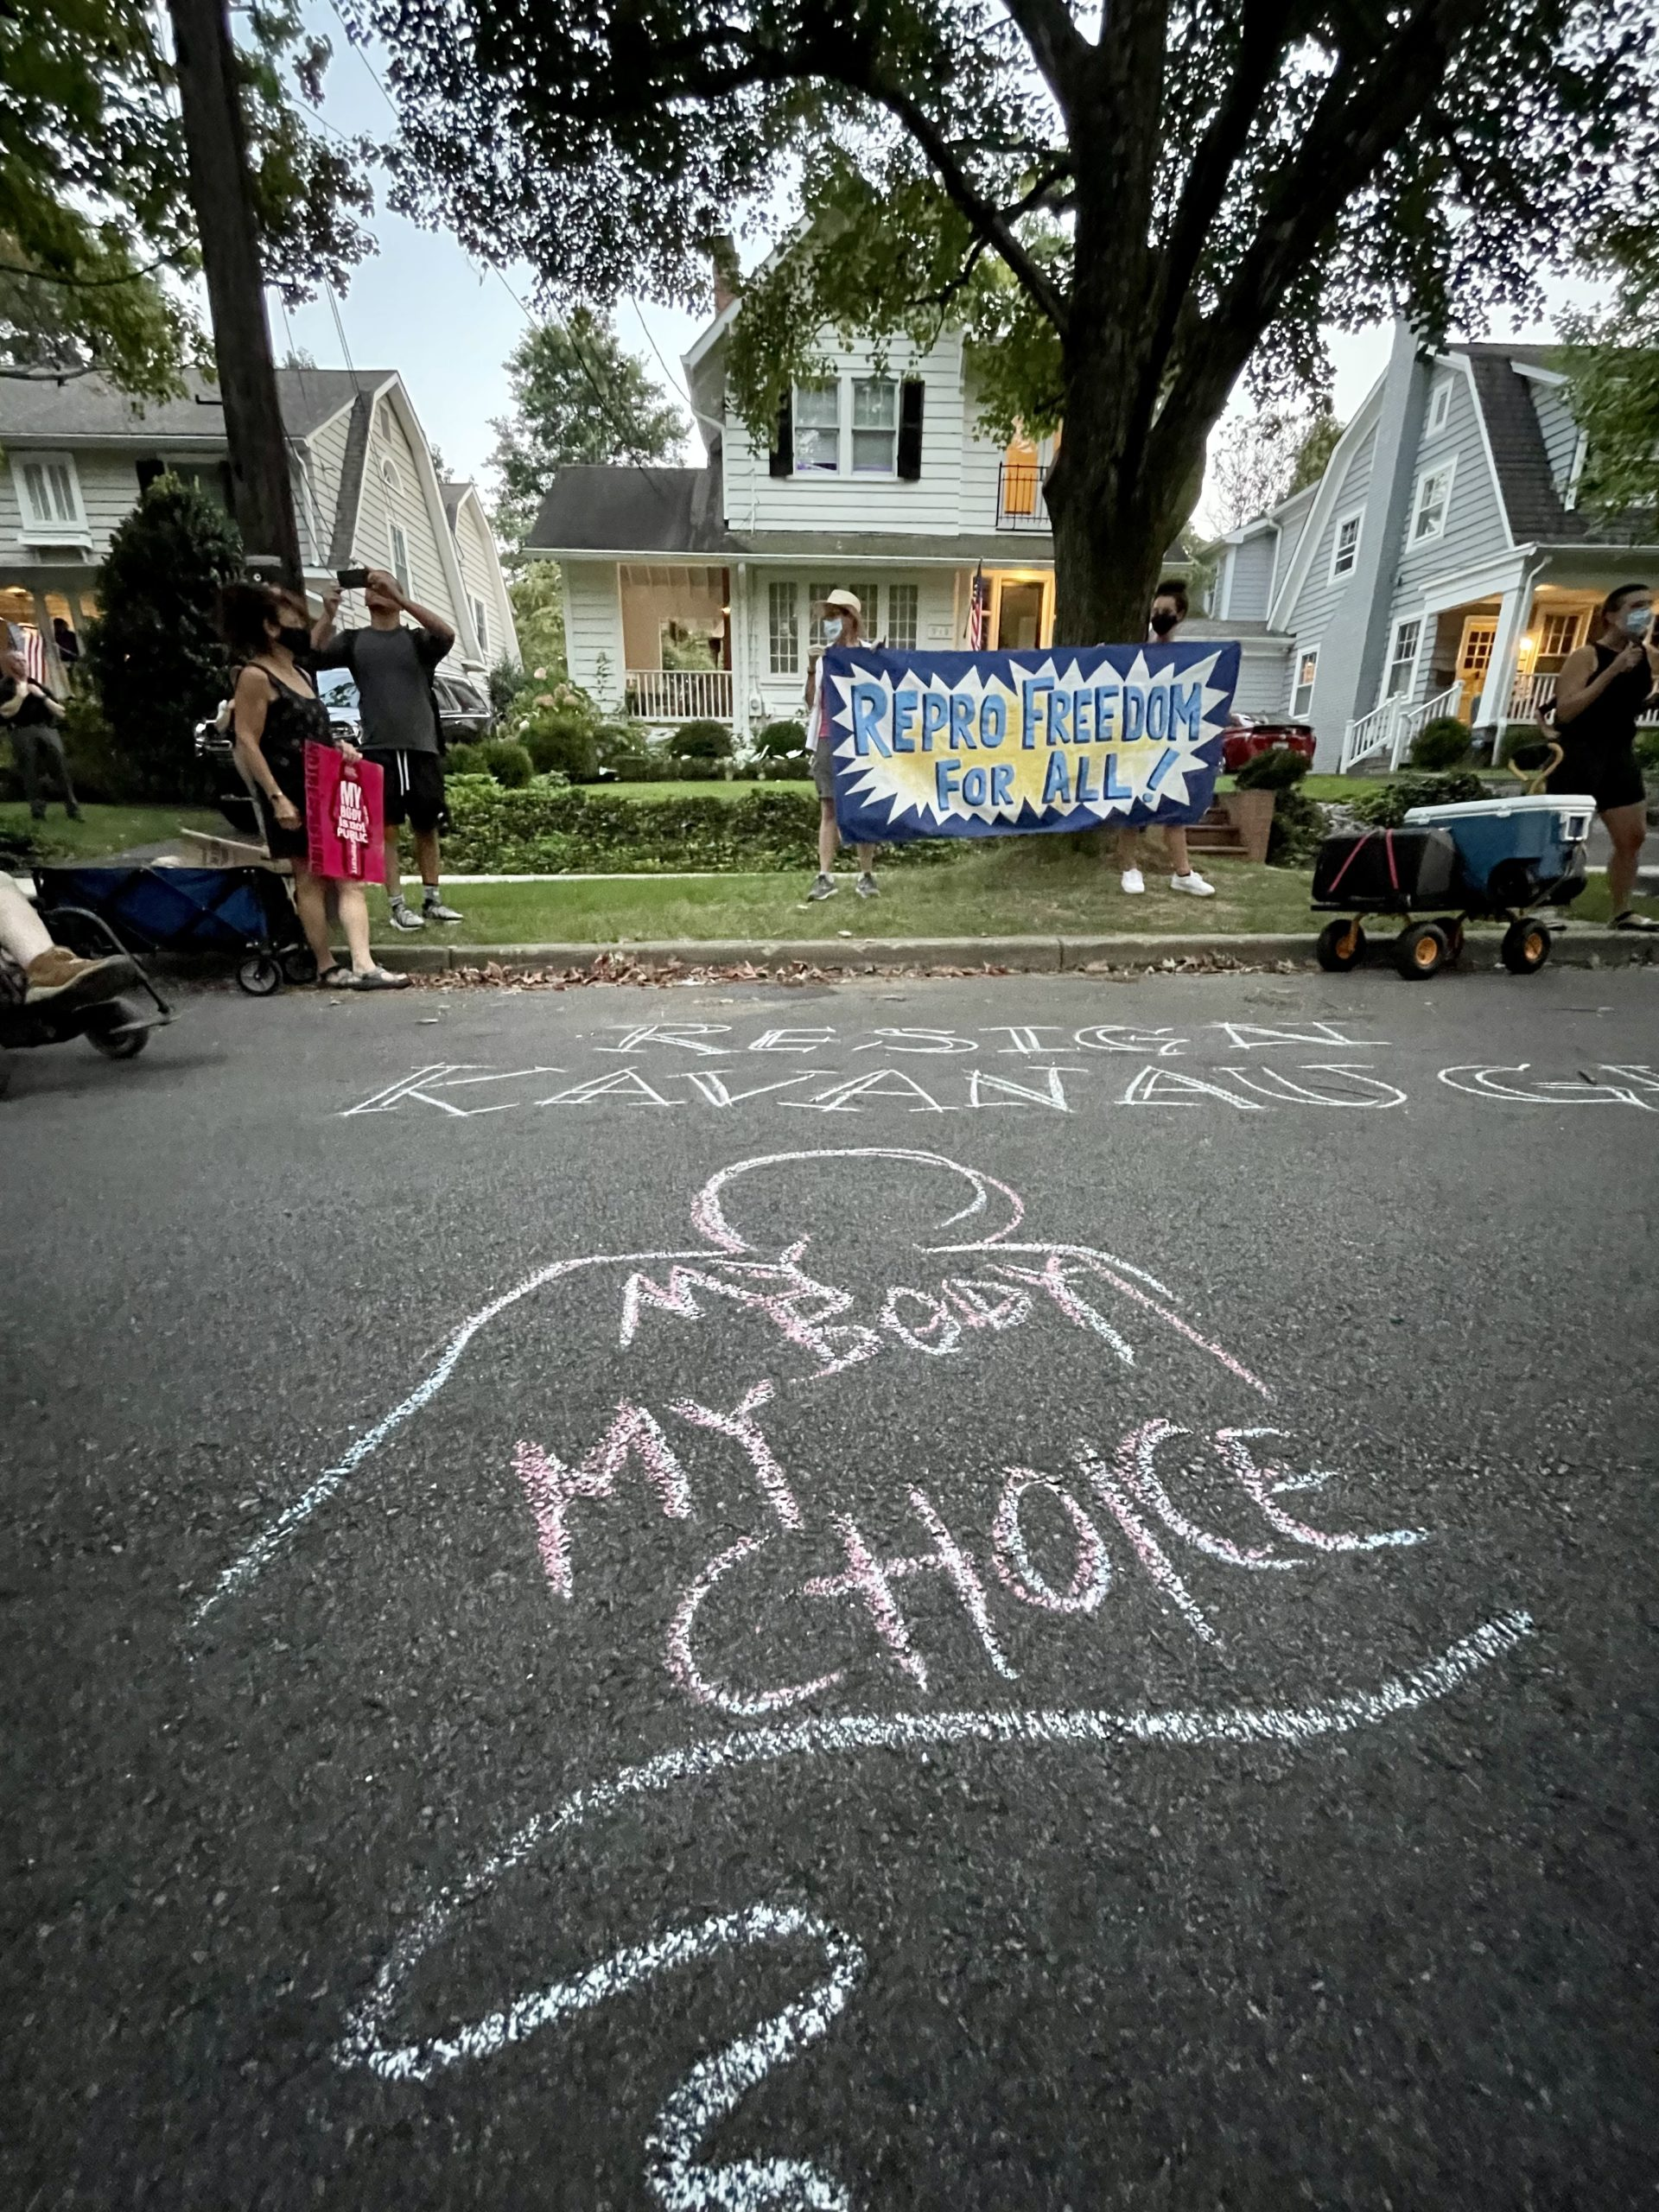 """Protestors wrote """"Resign Kavanaugh"""" in chalk in front of the Supreme Court justice's house. Police washed the chalk writing away with water after the protest. Photo by the Daily Caller News Foundation."""